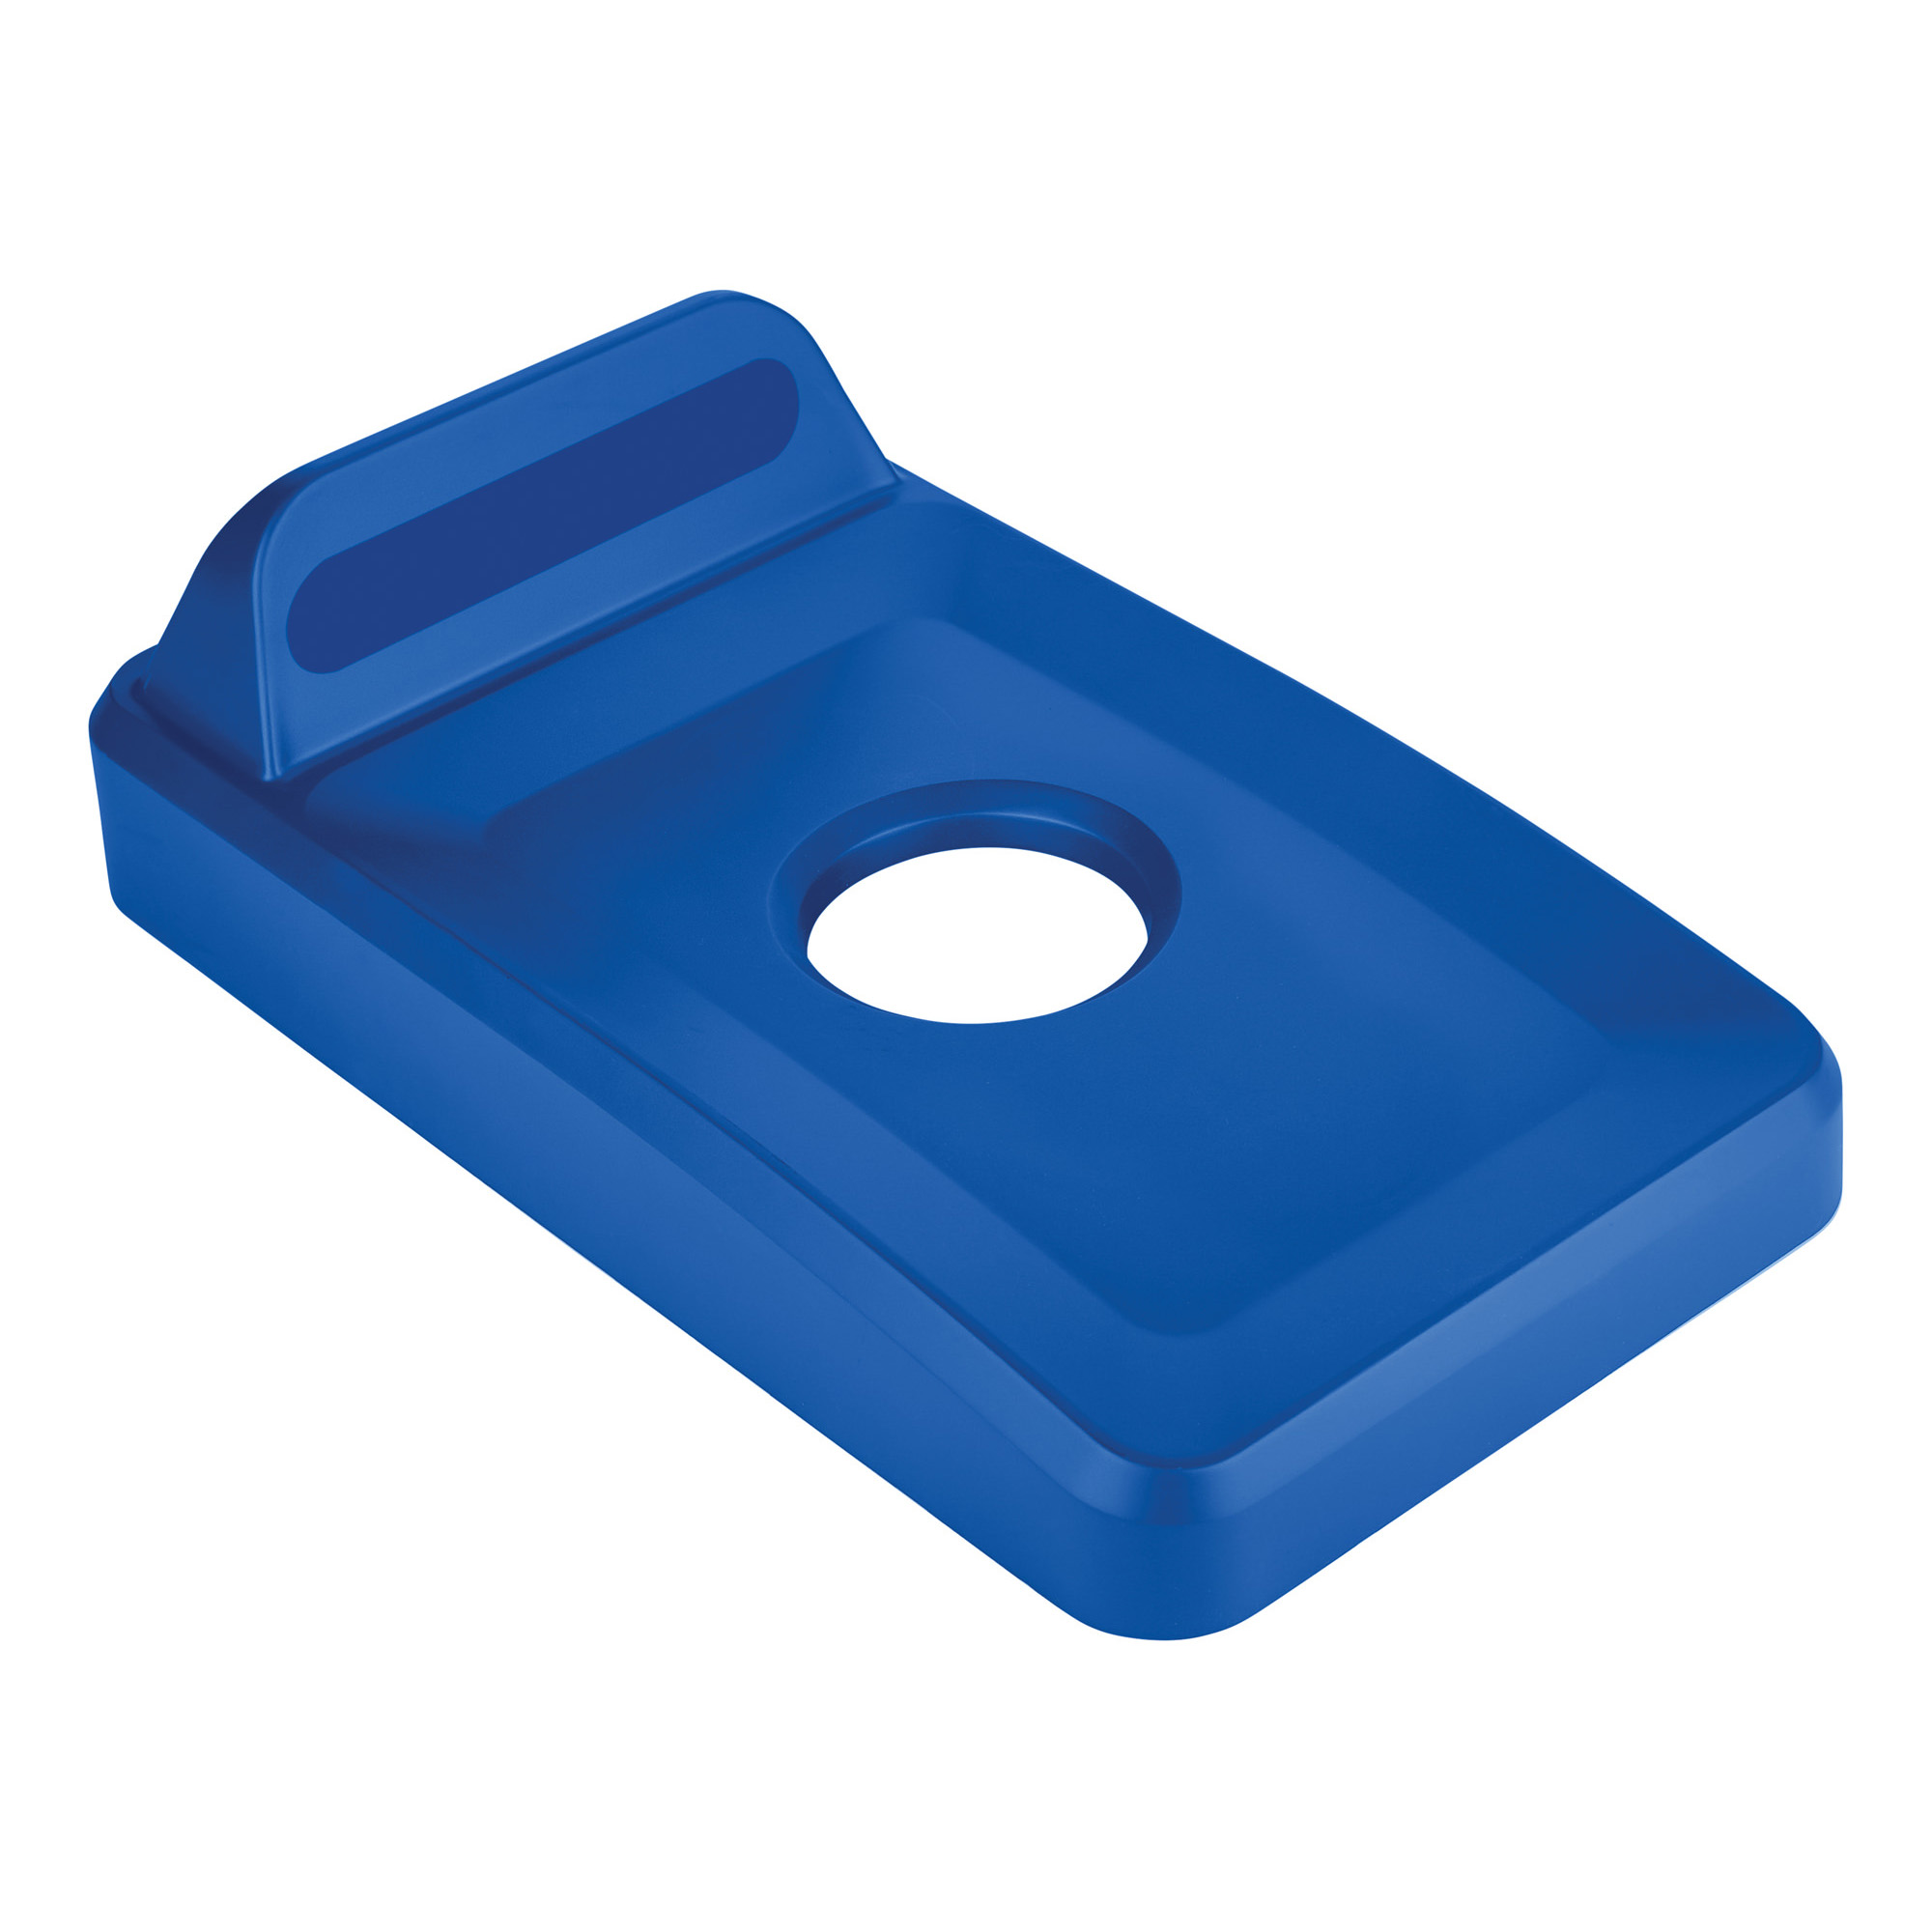 Rubbermaid Commercial Products 2018258 trash receptacle lid / top